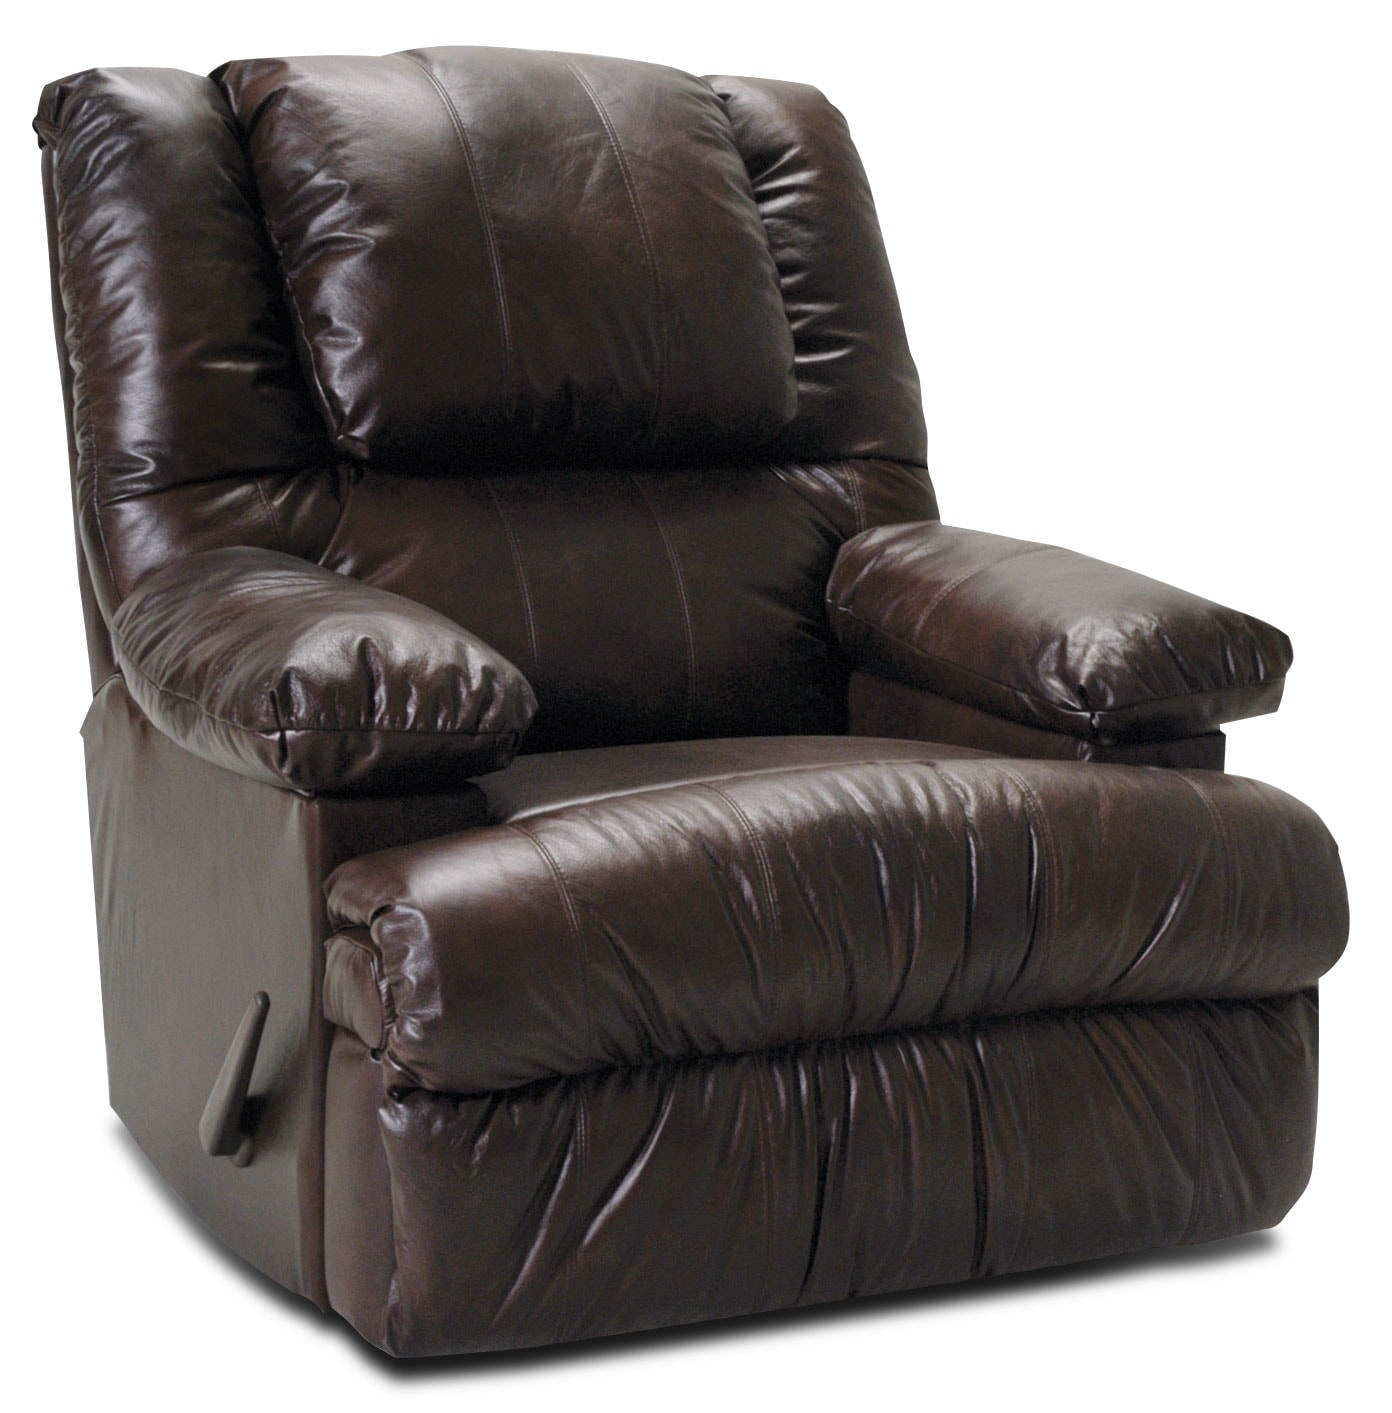 Designed2B Recliner 5598 Genuine Leather Rocker with Storage Arms - Chocolate